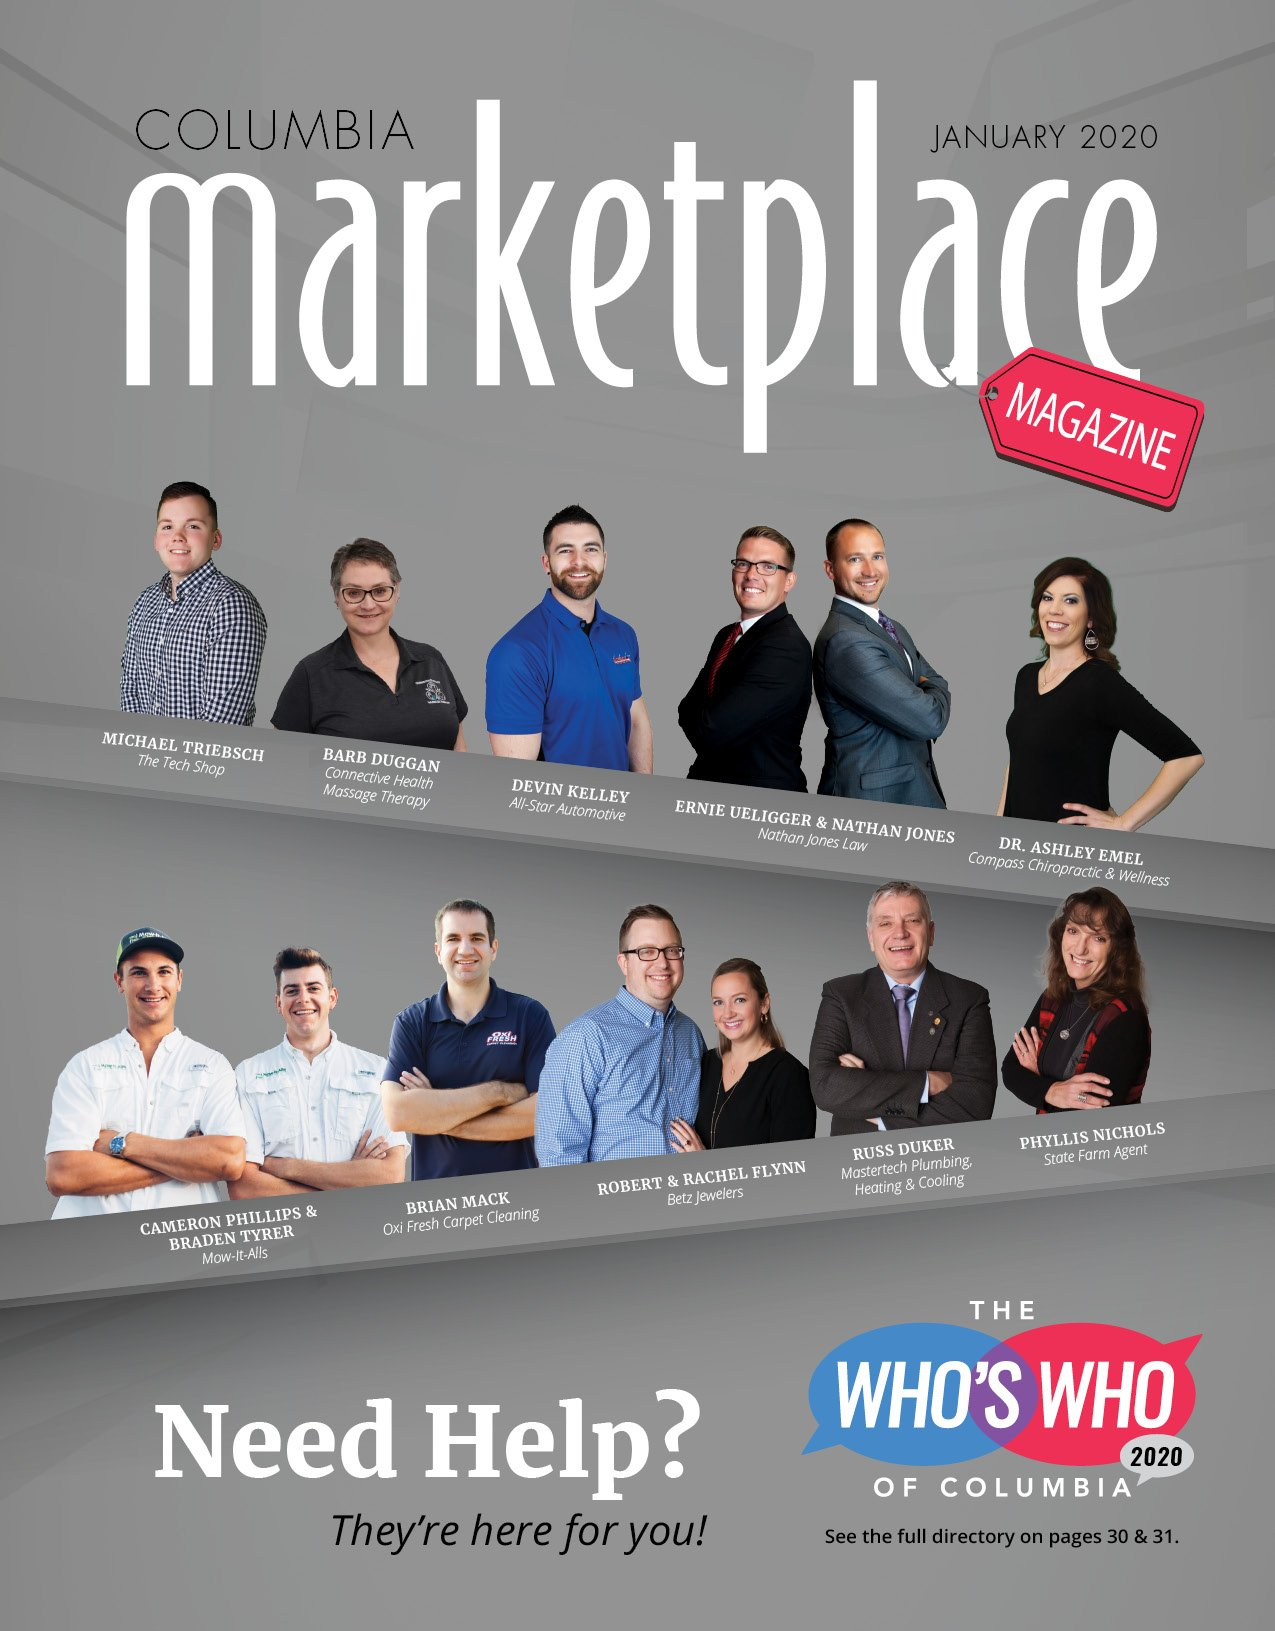 Columbia Marketplace Magazine by Modern Media Concepts January 2020 Edition Featuring the Whos Who of Columbia Missouri Local Businesses Cover